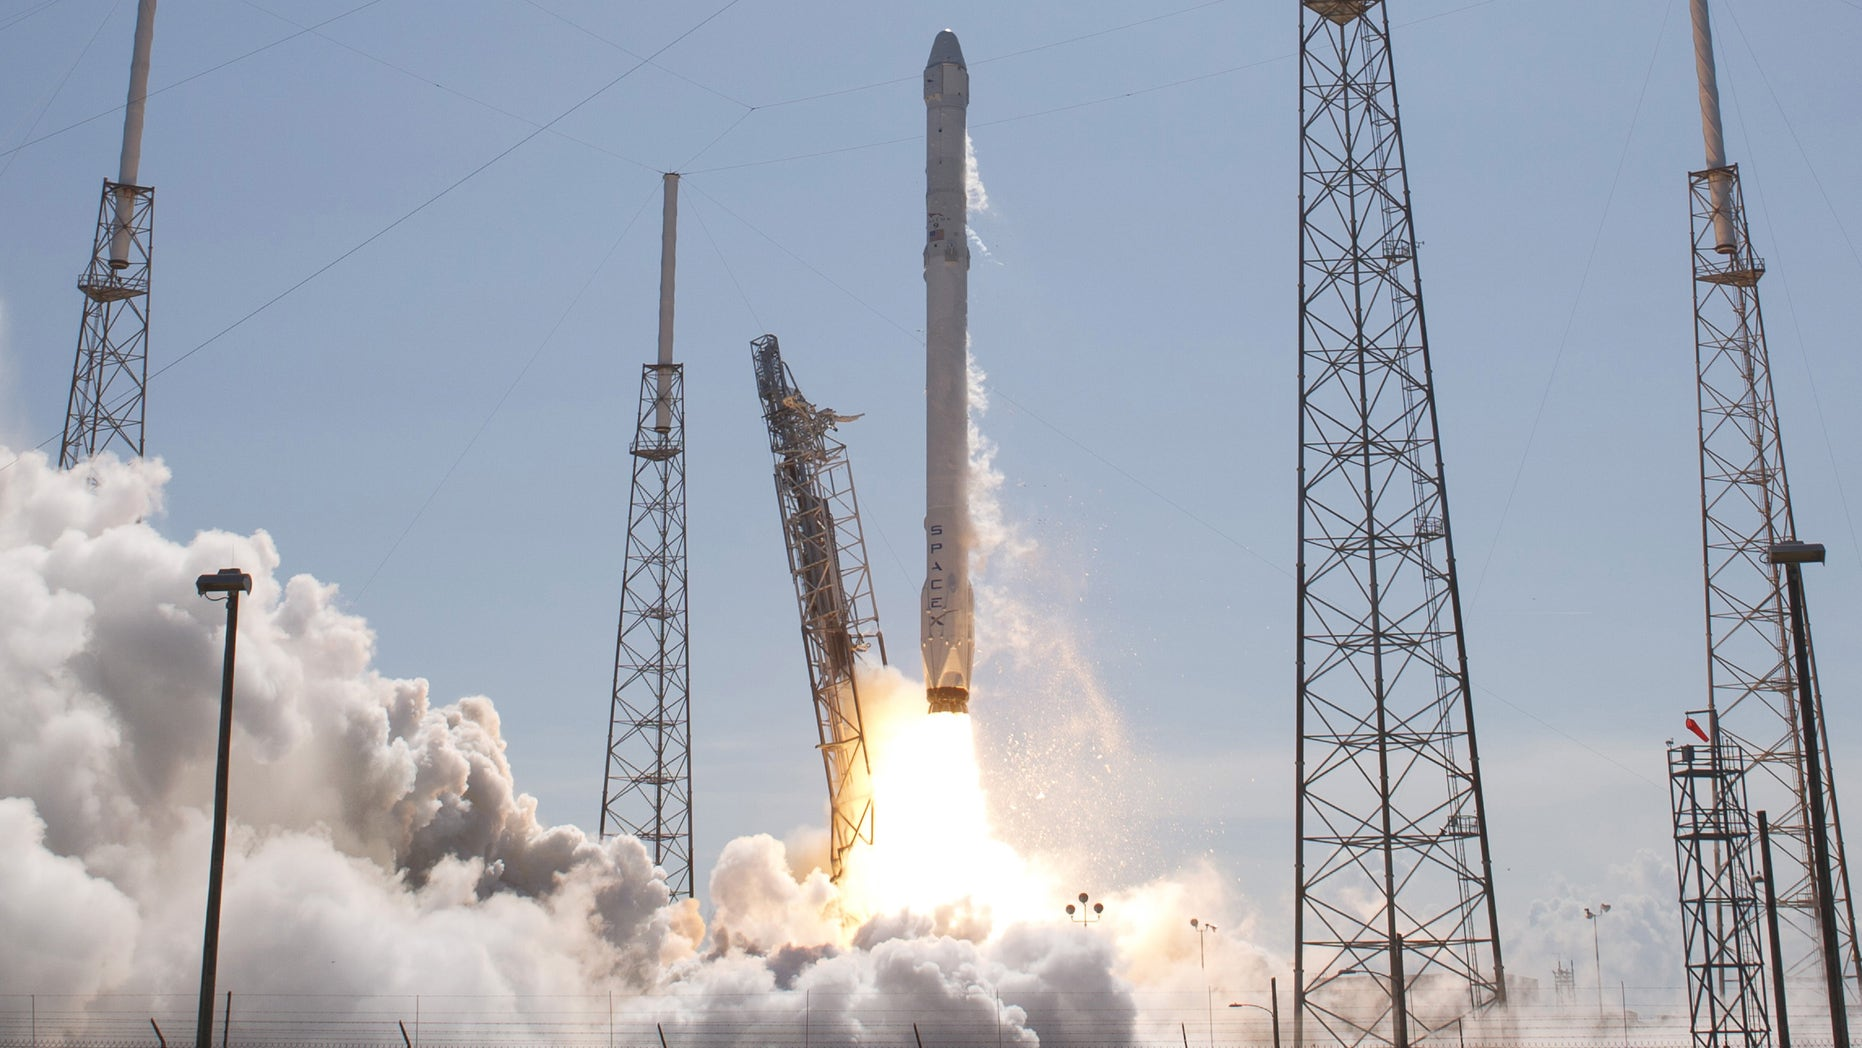 The unmanned SpaceX Falcon 9 rocket with Dragon lifts off from launch pad 40 at the Cape Canaveral Air Force Station in Cape Canaveral, Florida April 14, 2015.